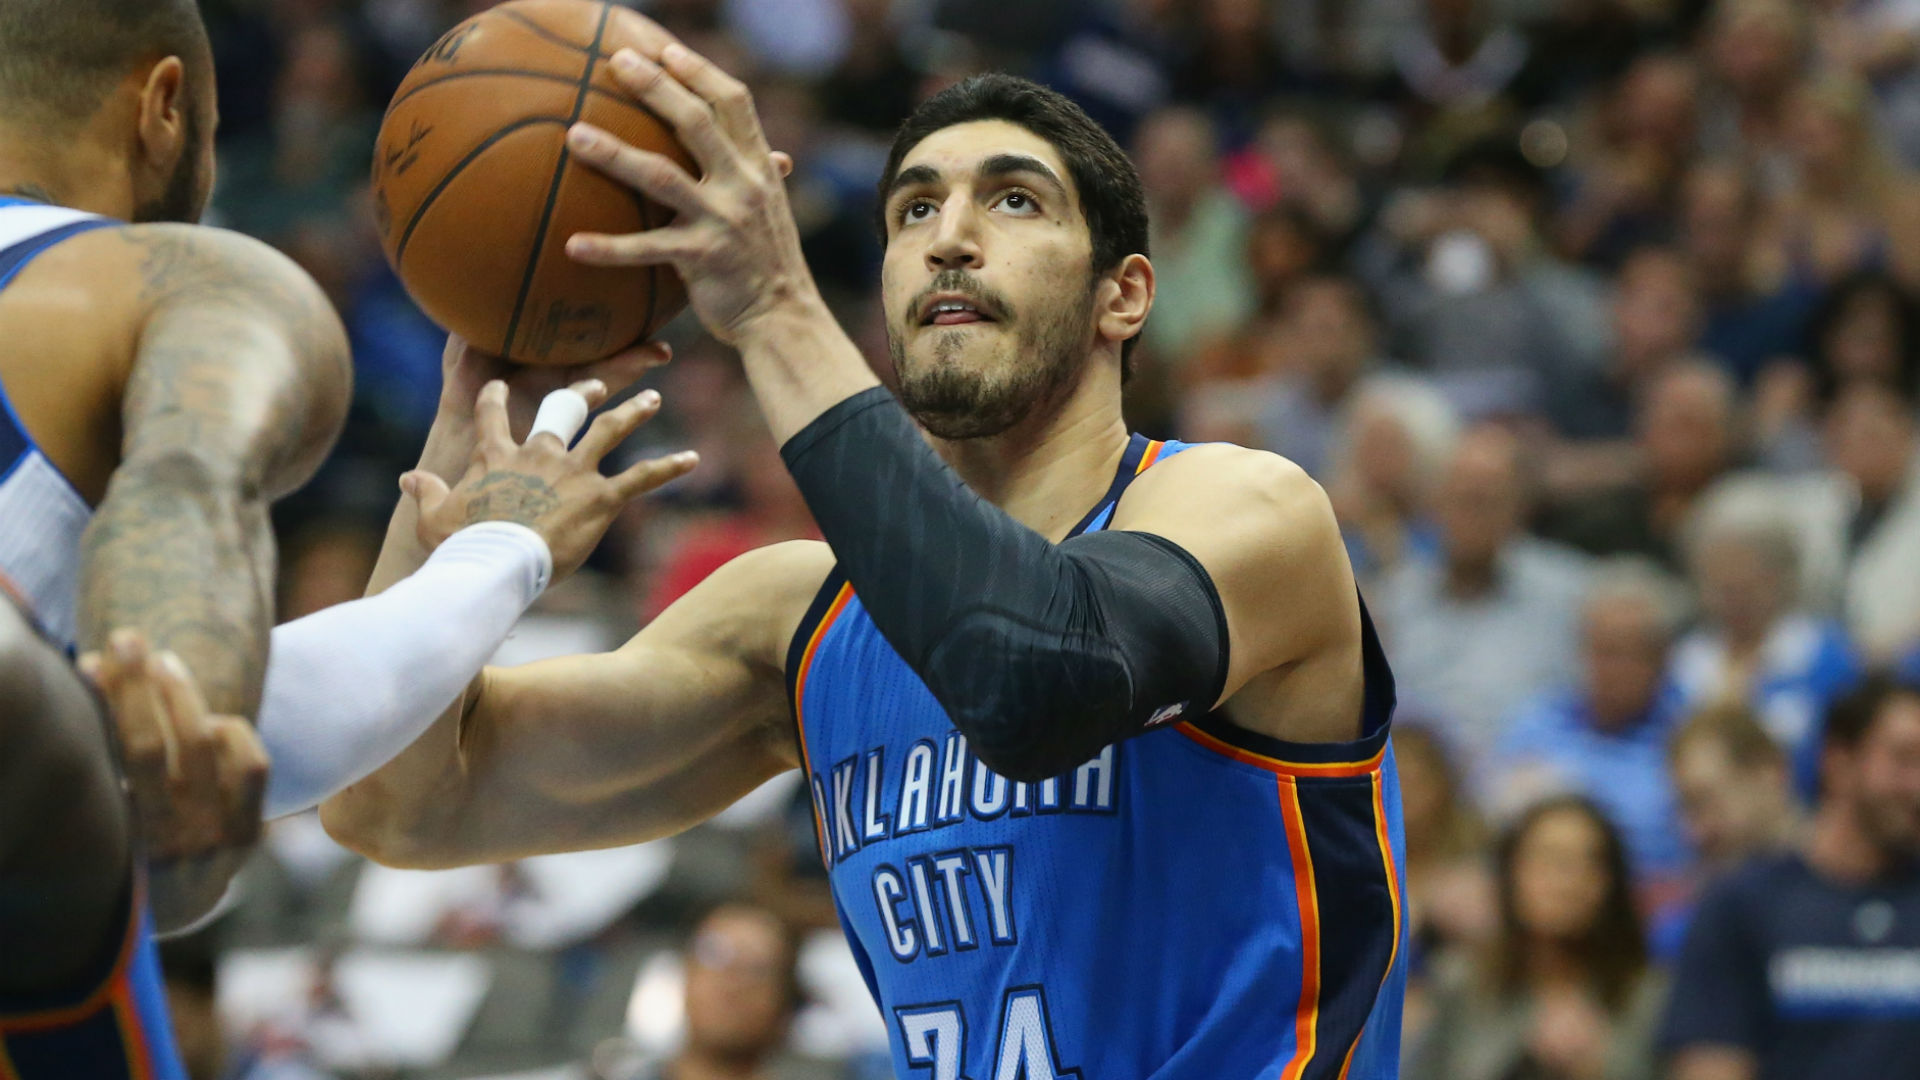 Thunder's Kanter heading to US after detainment in Romania